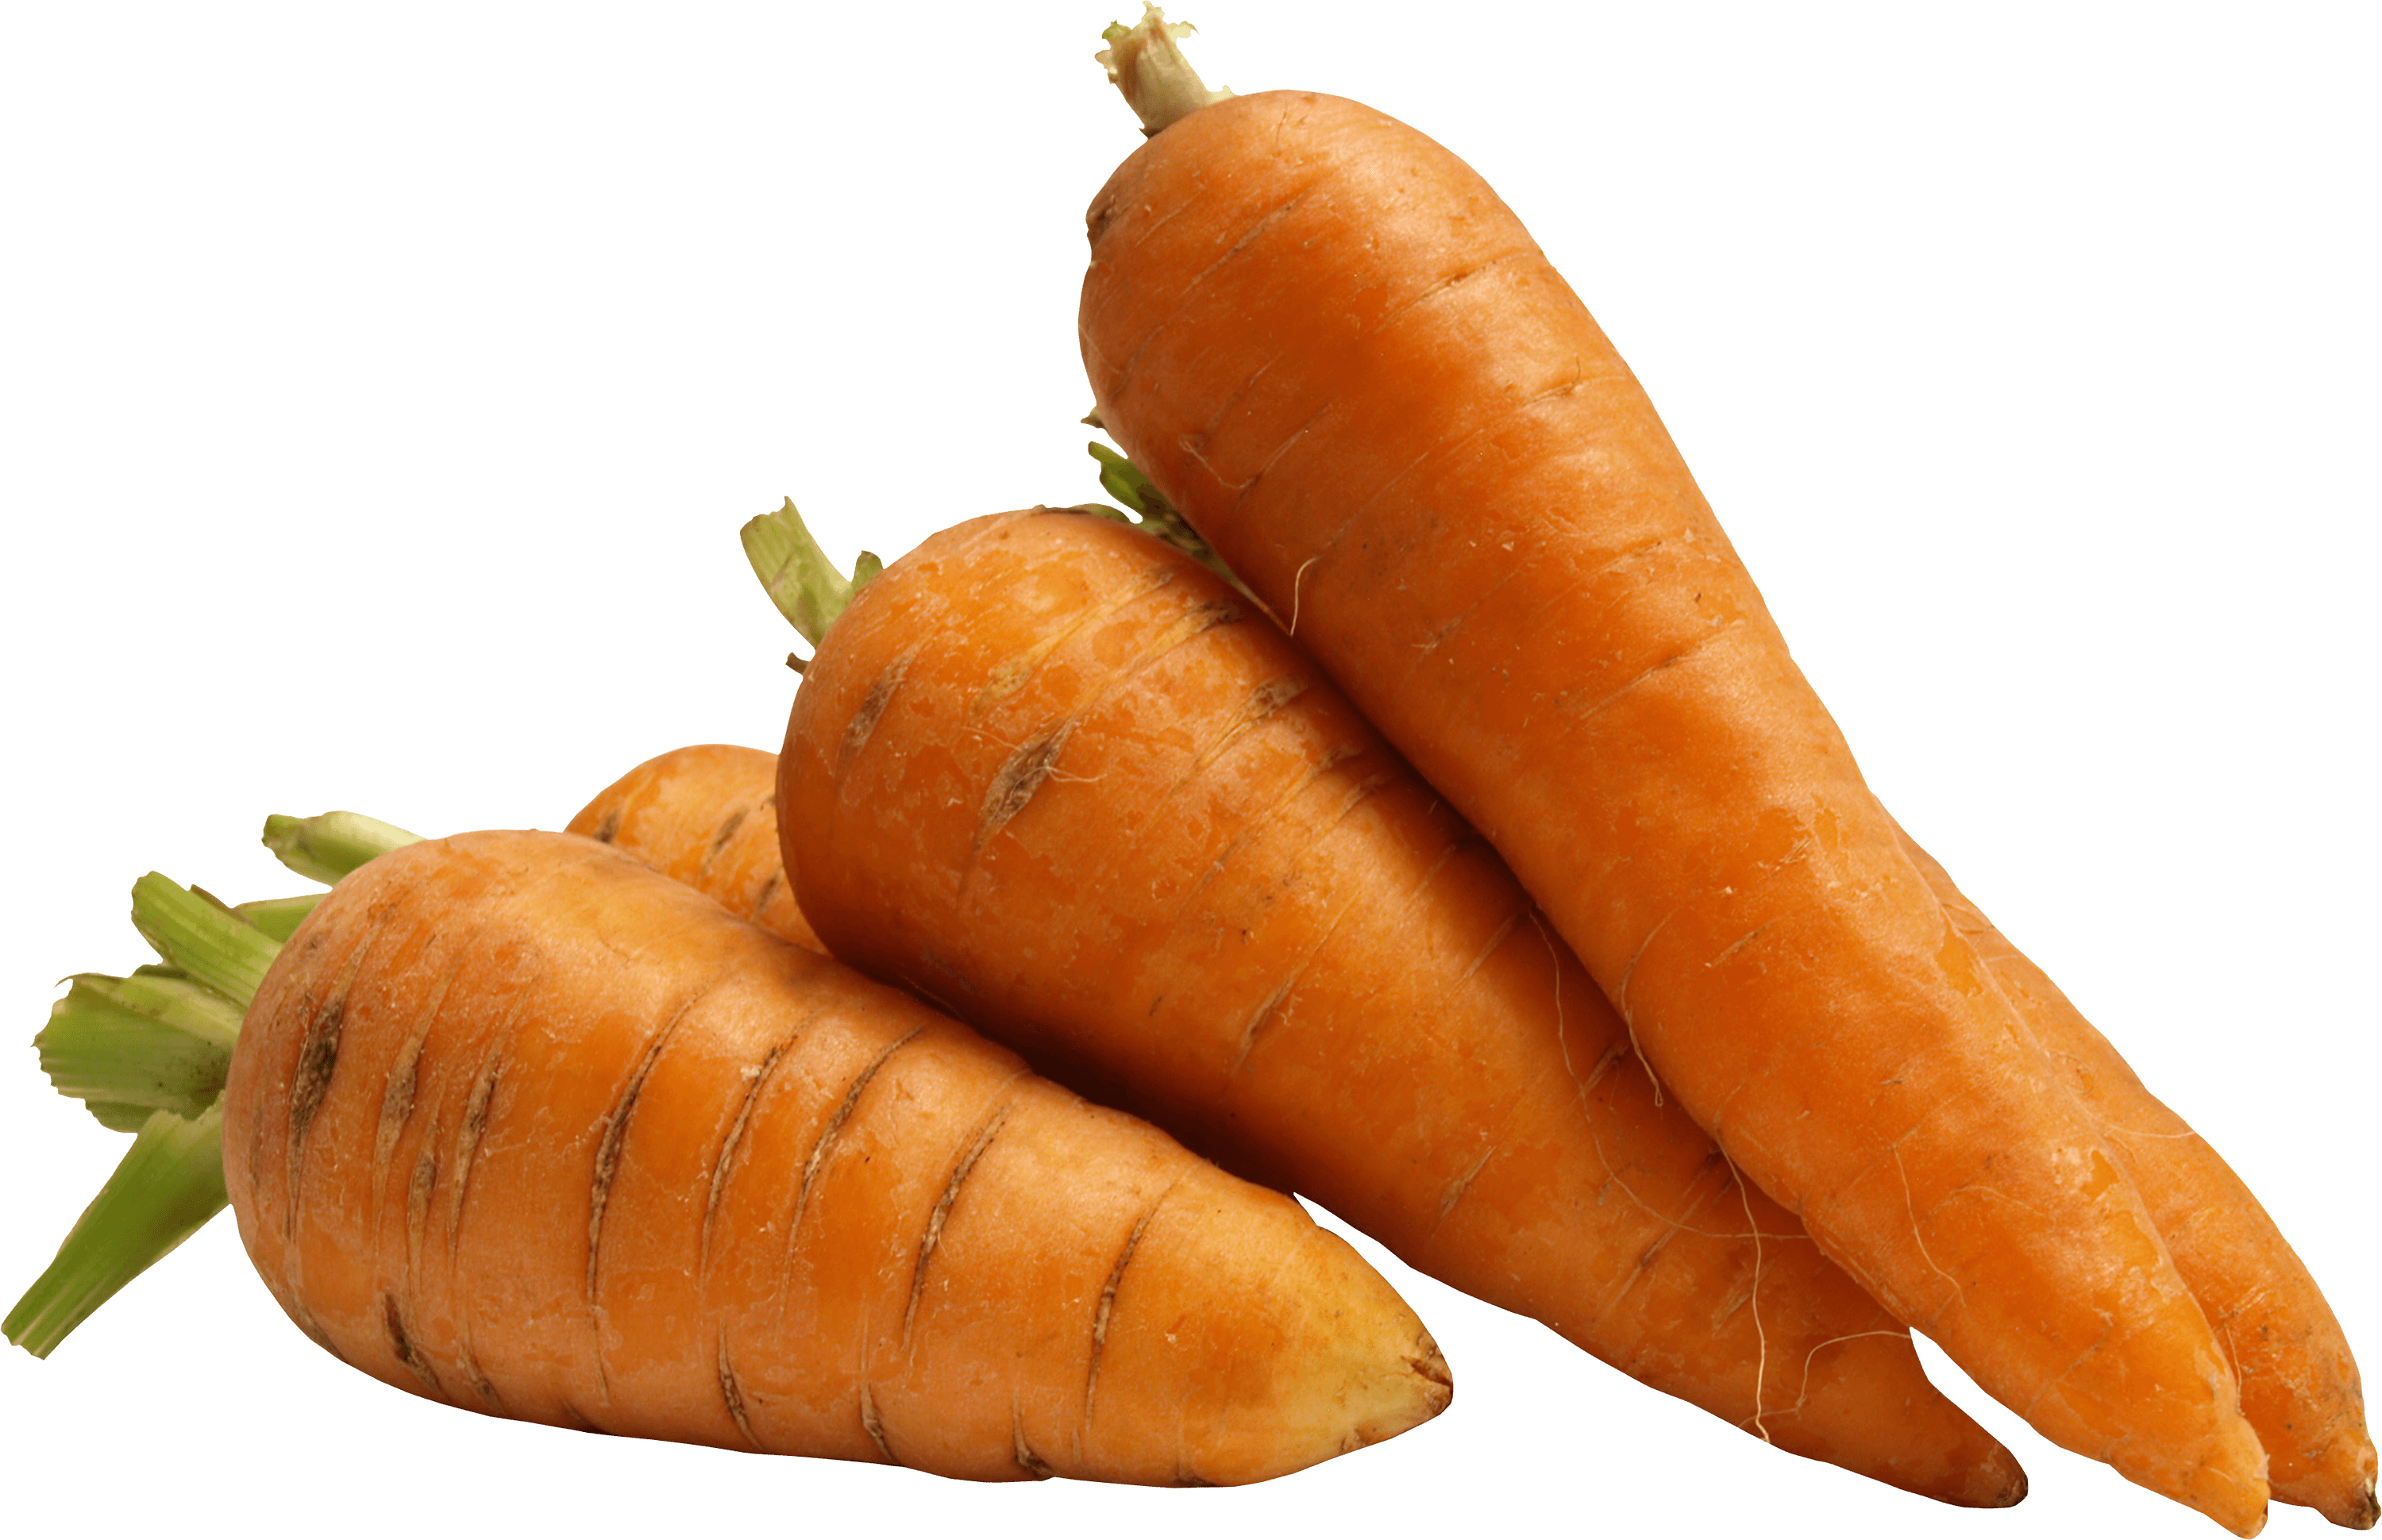 picture royalty free download A few carrots png. Transparent carrot